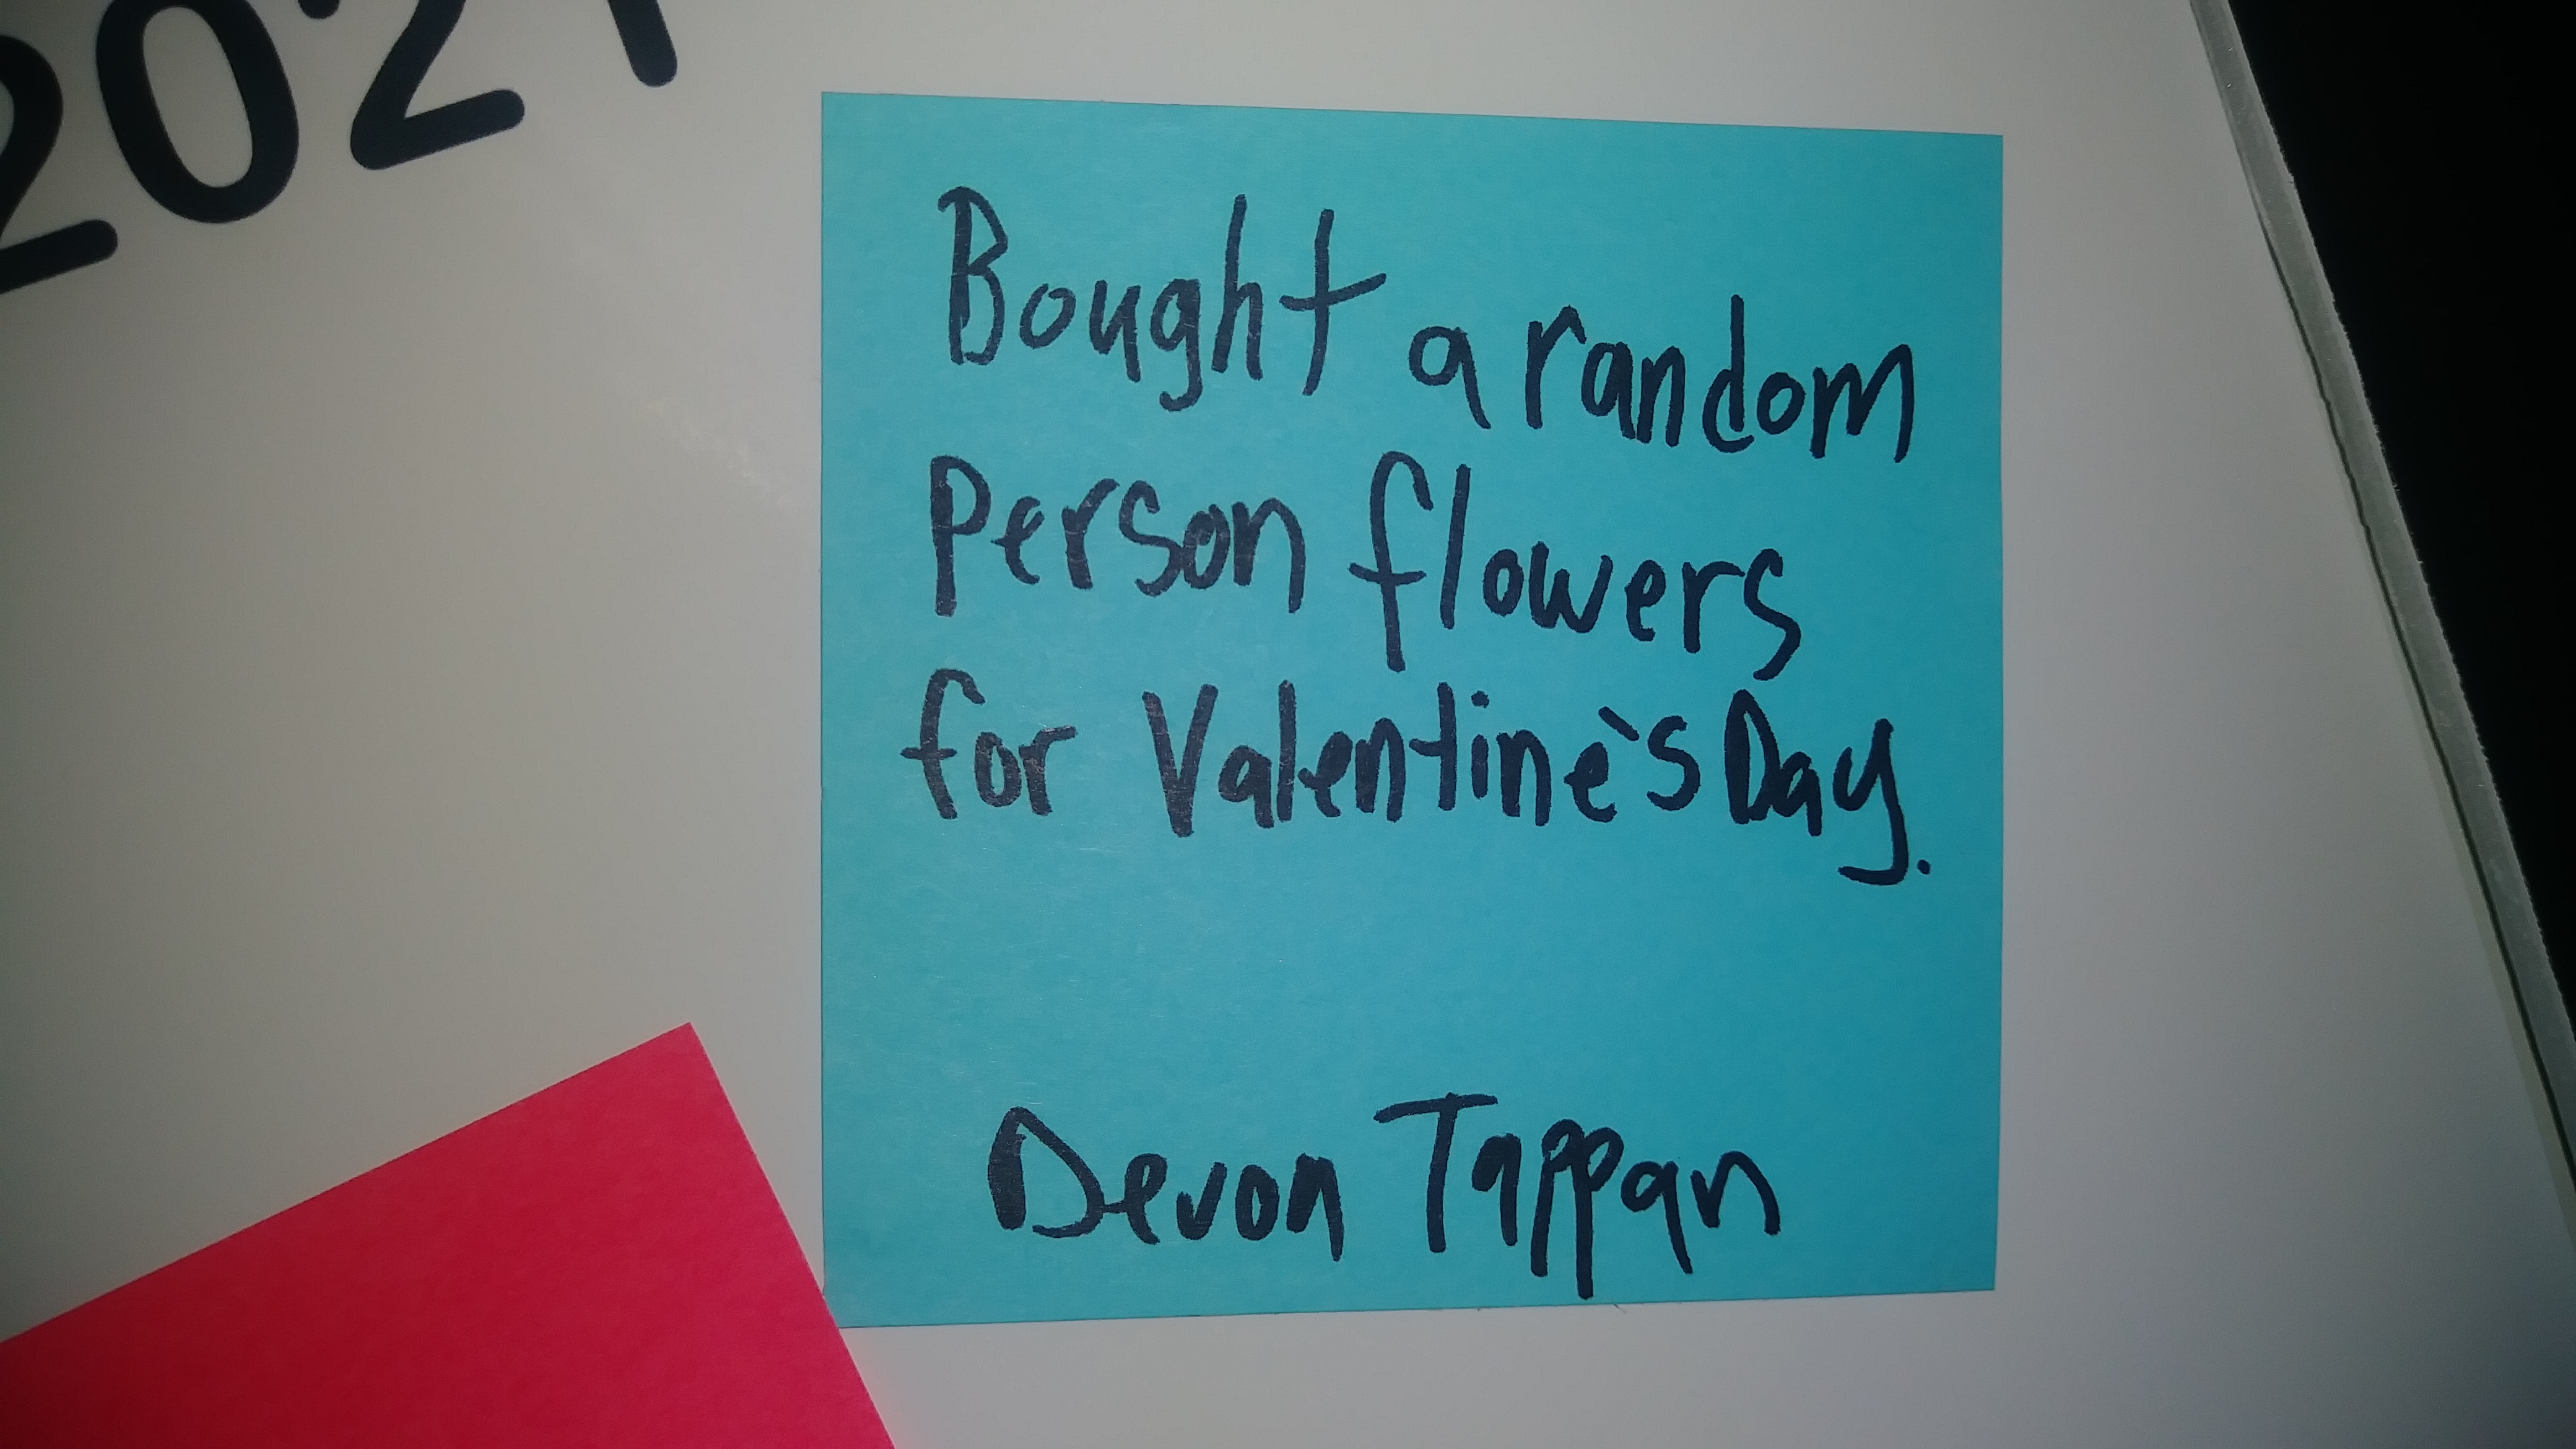 Bought a random person flowers for Valentine's Day